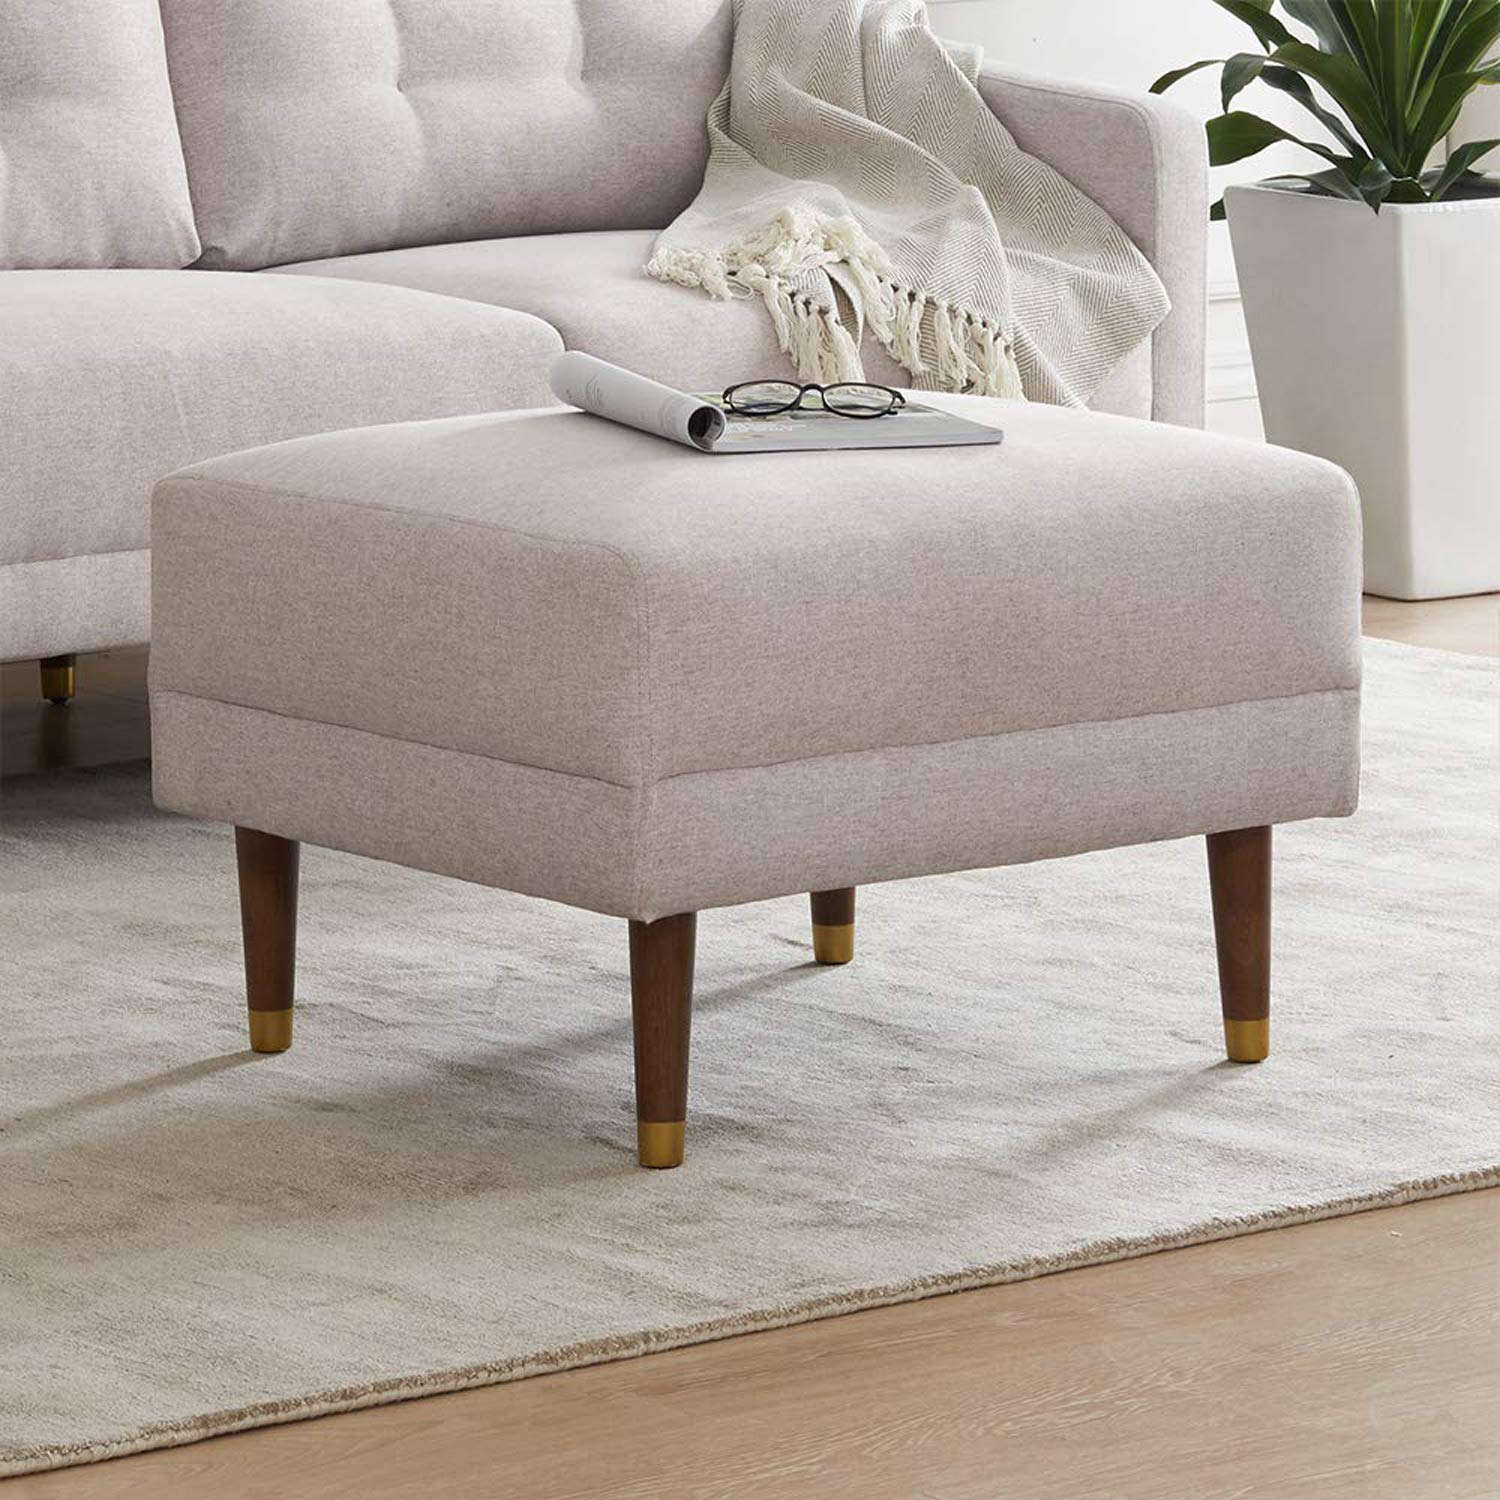 Savannah Mid-Century Modern Fabric Square Ottoman with Tapered Gold Caps Legs from Mopio, 27'' W, (Light Gray) by AsianiCandy